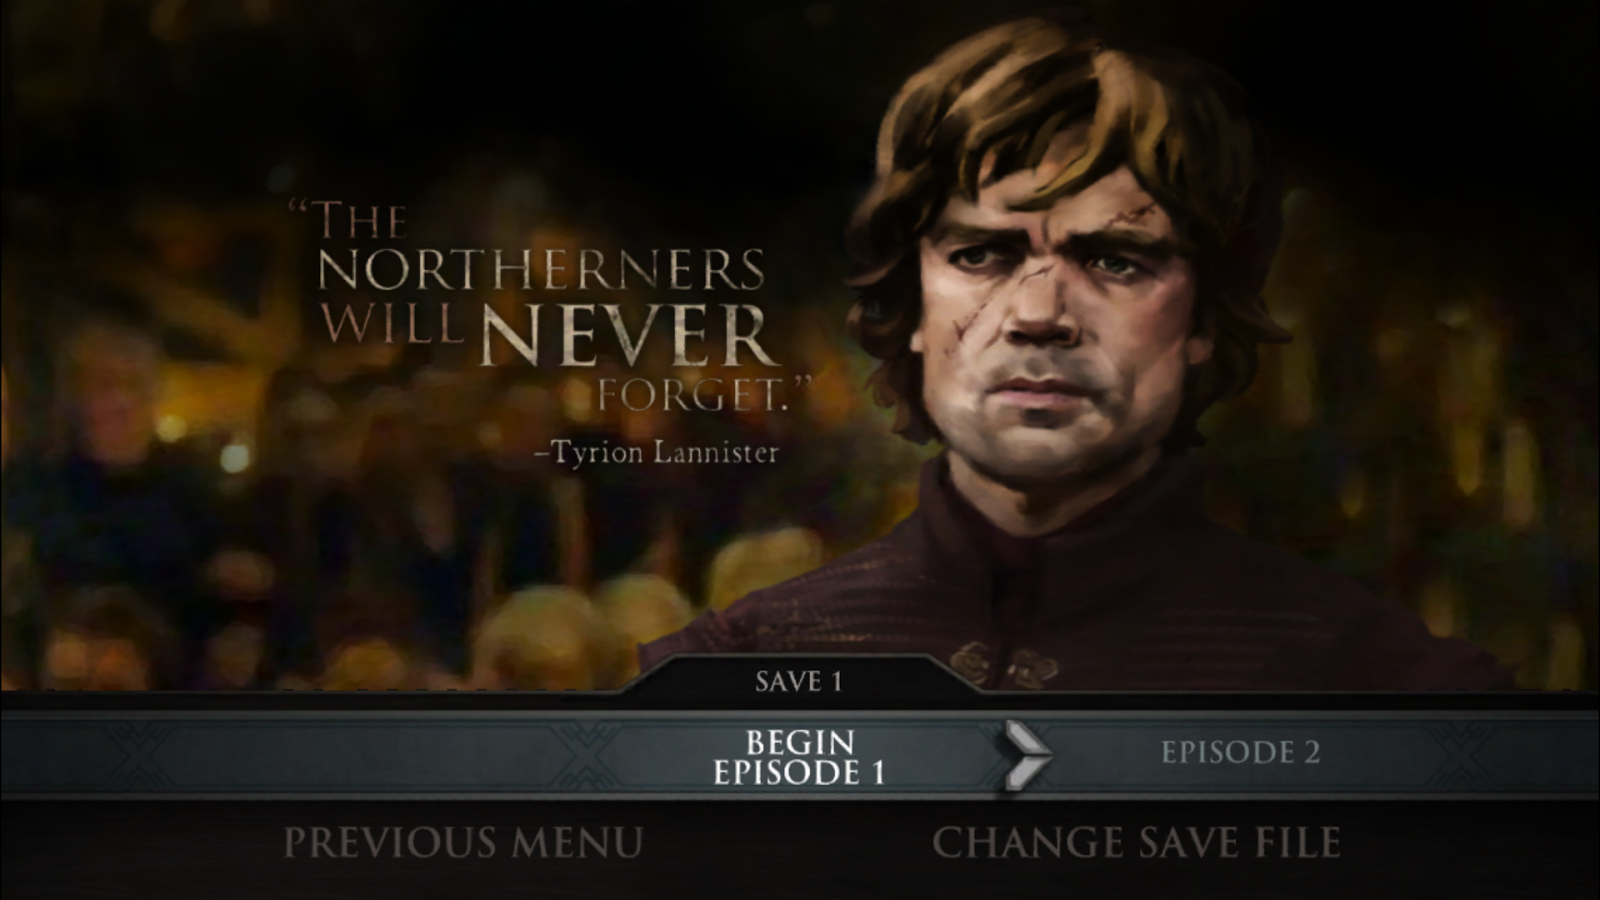 Game of thrones all men must die raven android wallpaper free download.